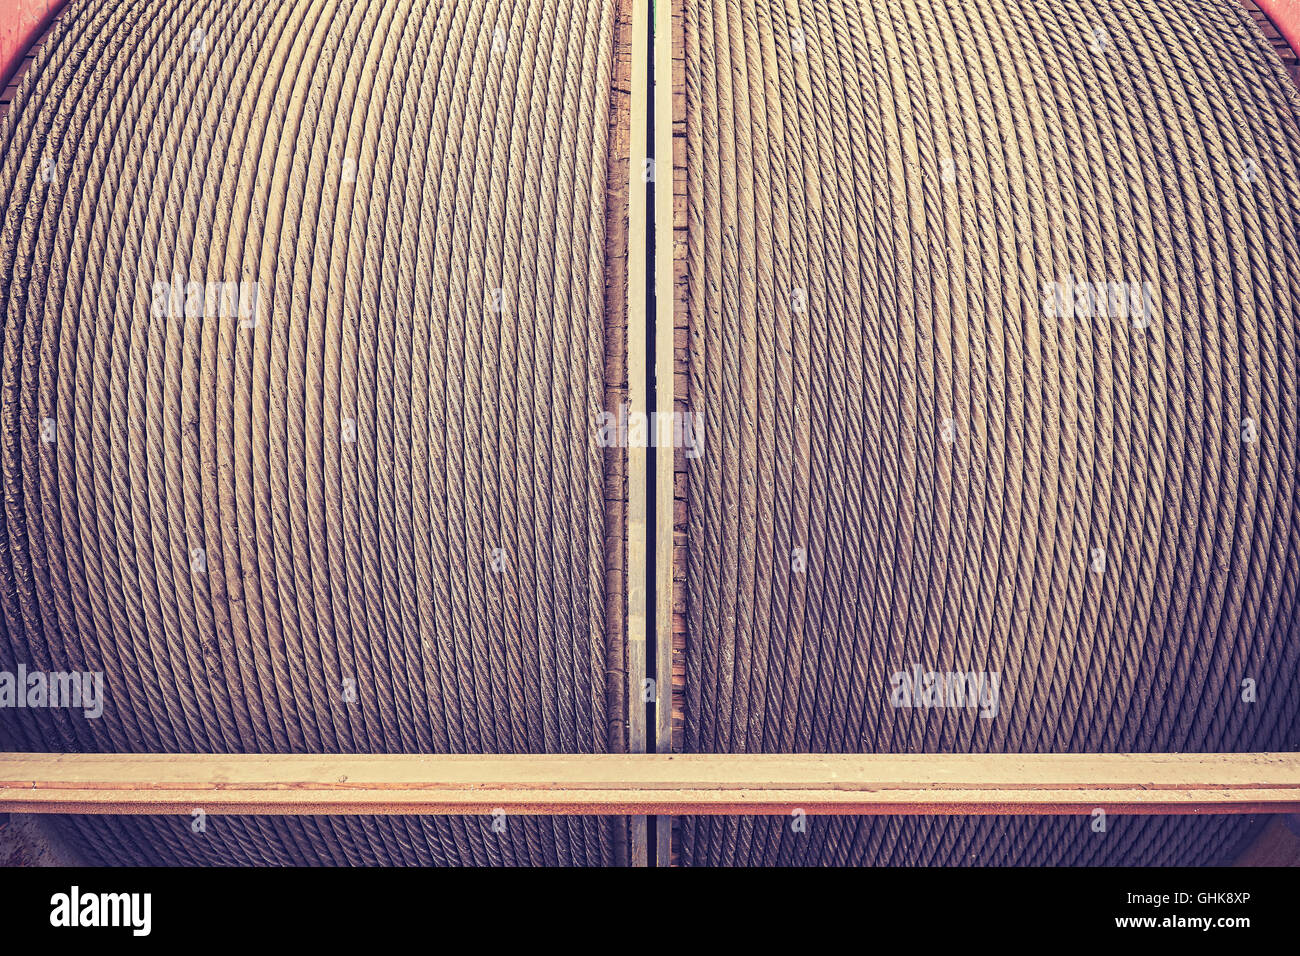 Vintage toned steel winching cable, industrial background. - Stock Image